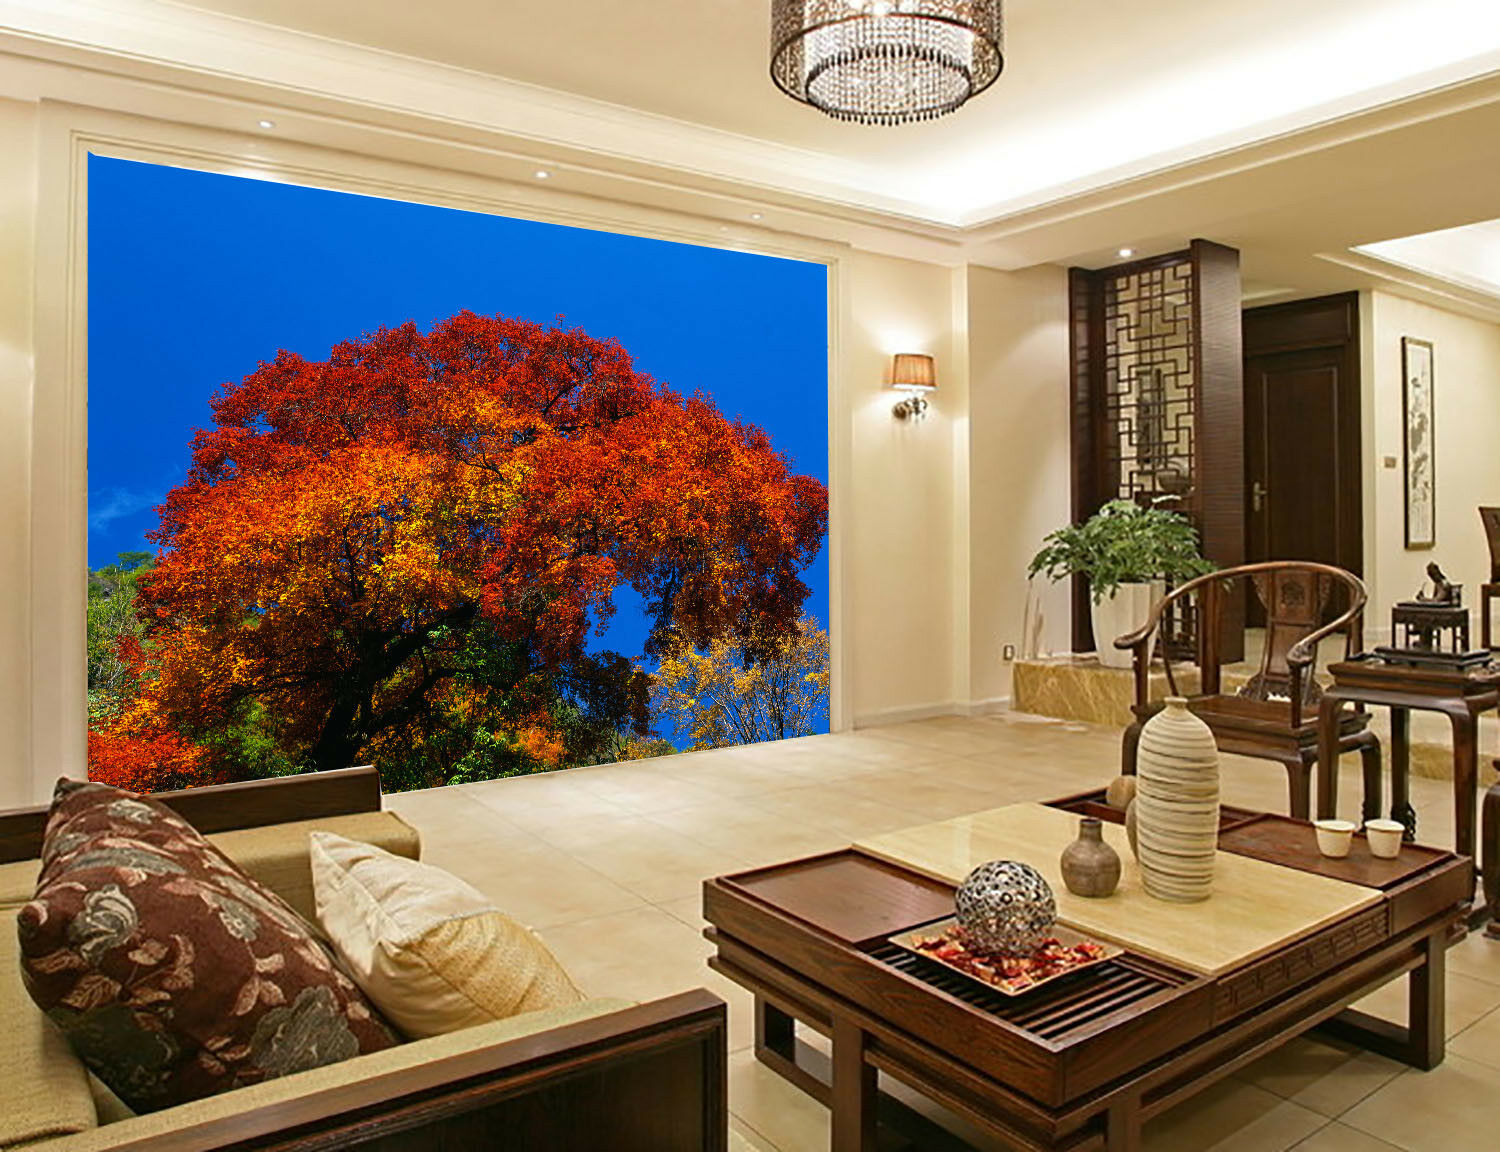 3D Red Leaf Tree 566 Wall Paper Wall Print Decal Wall Deco Indoor Mural Summer